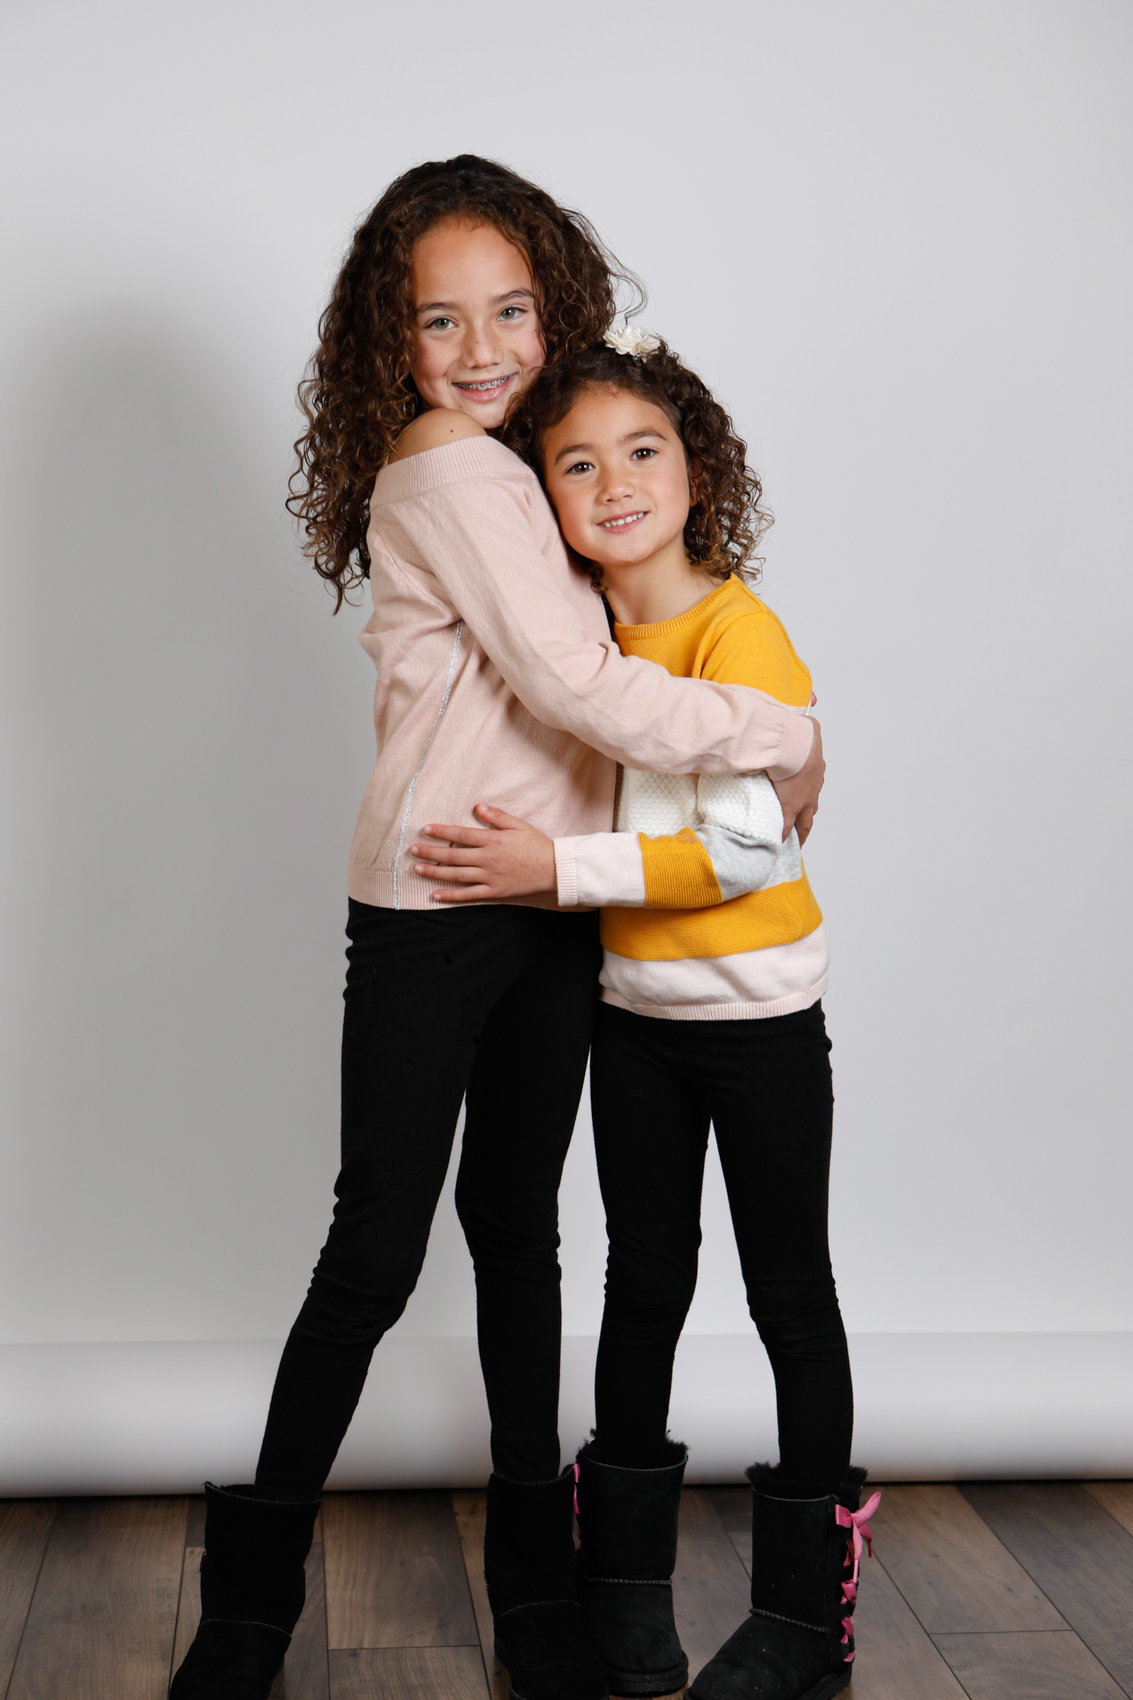 Family photoshoot in palo alto studio, loving girls